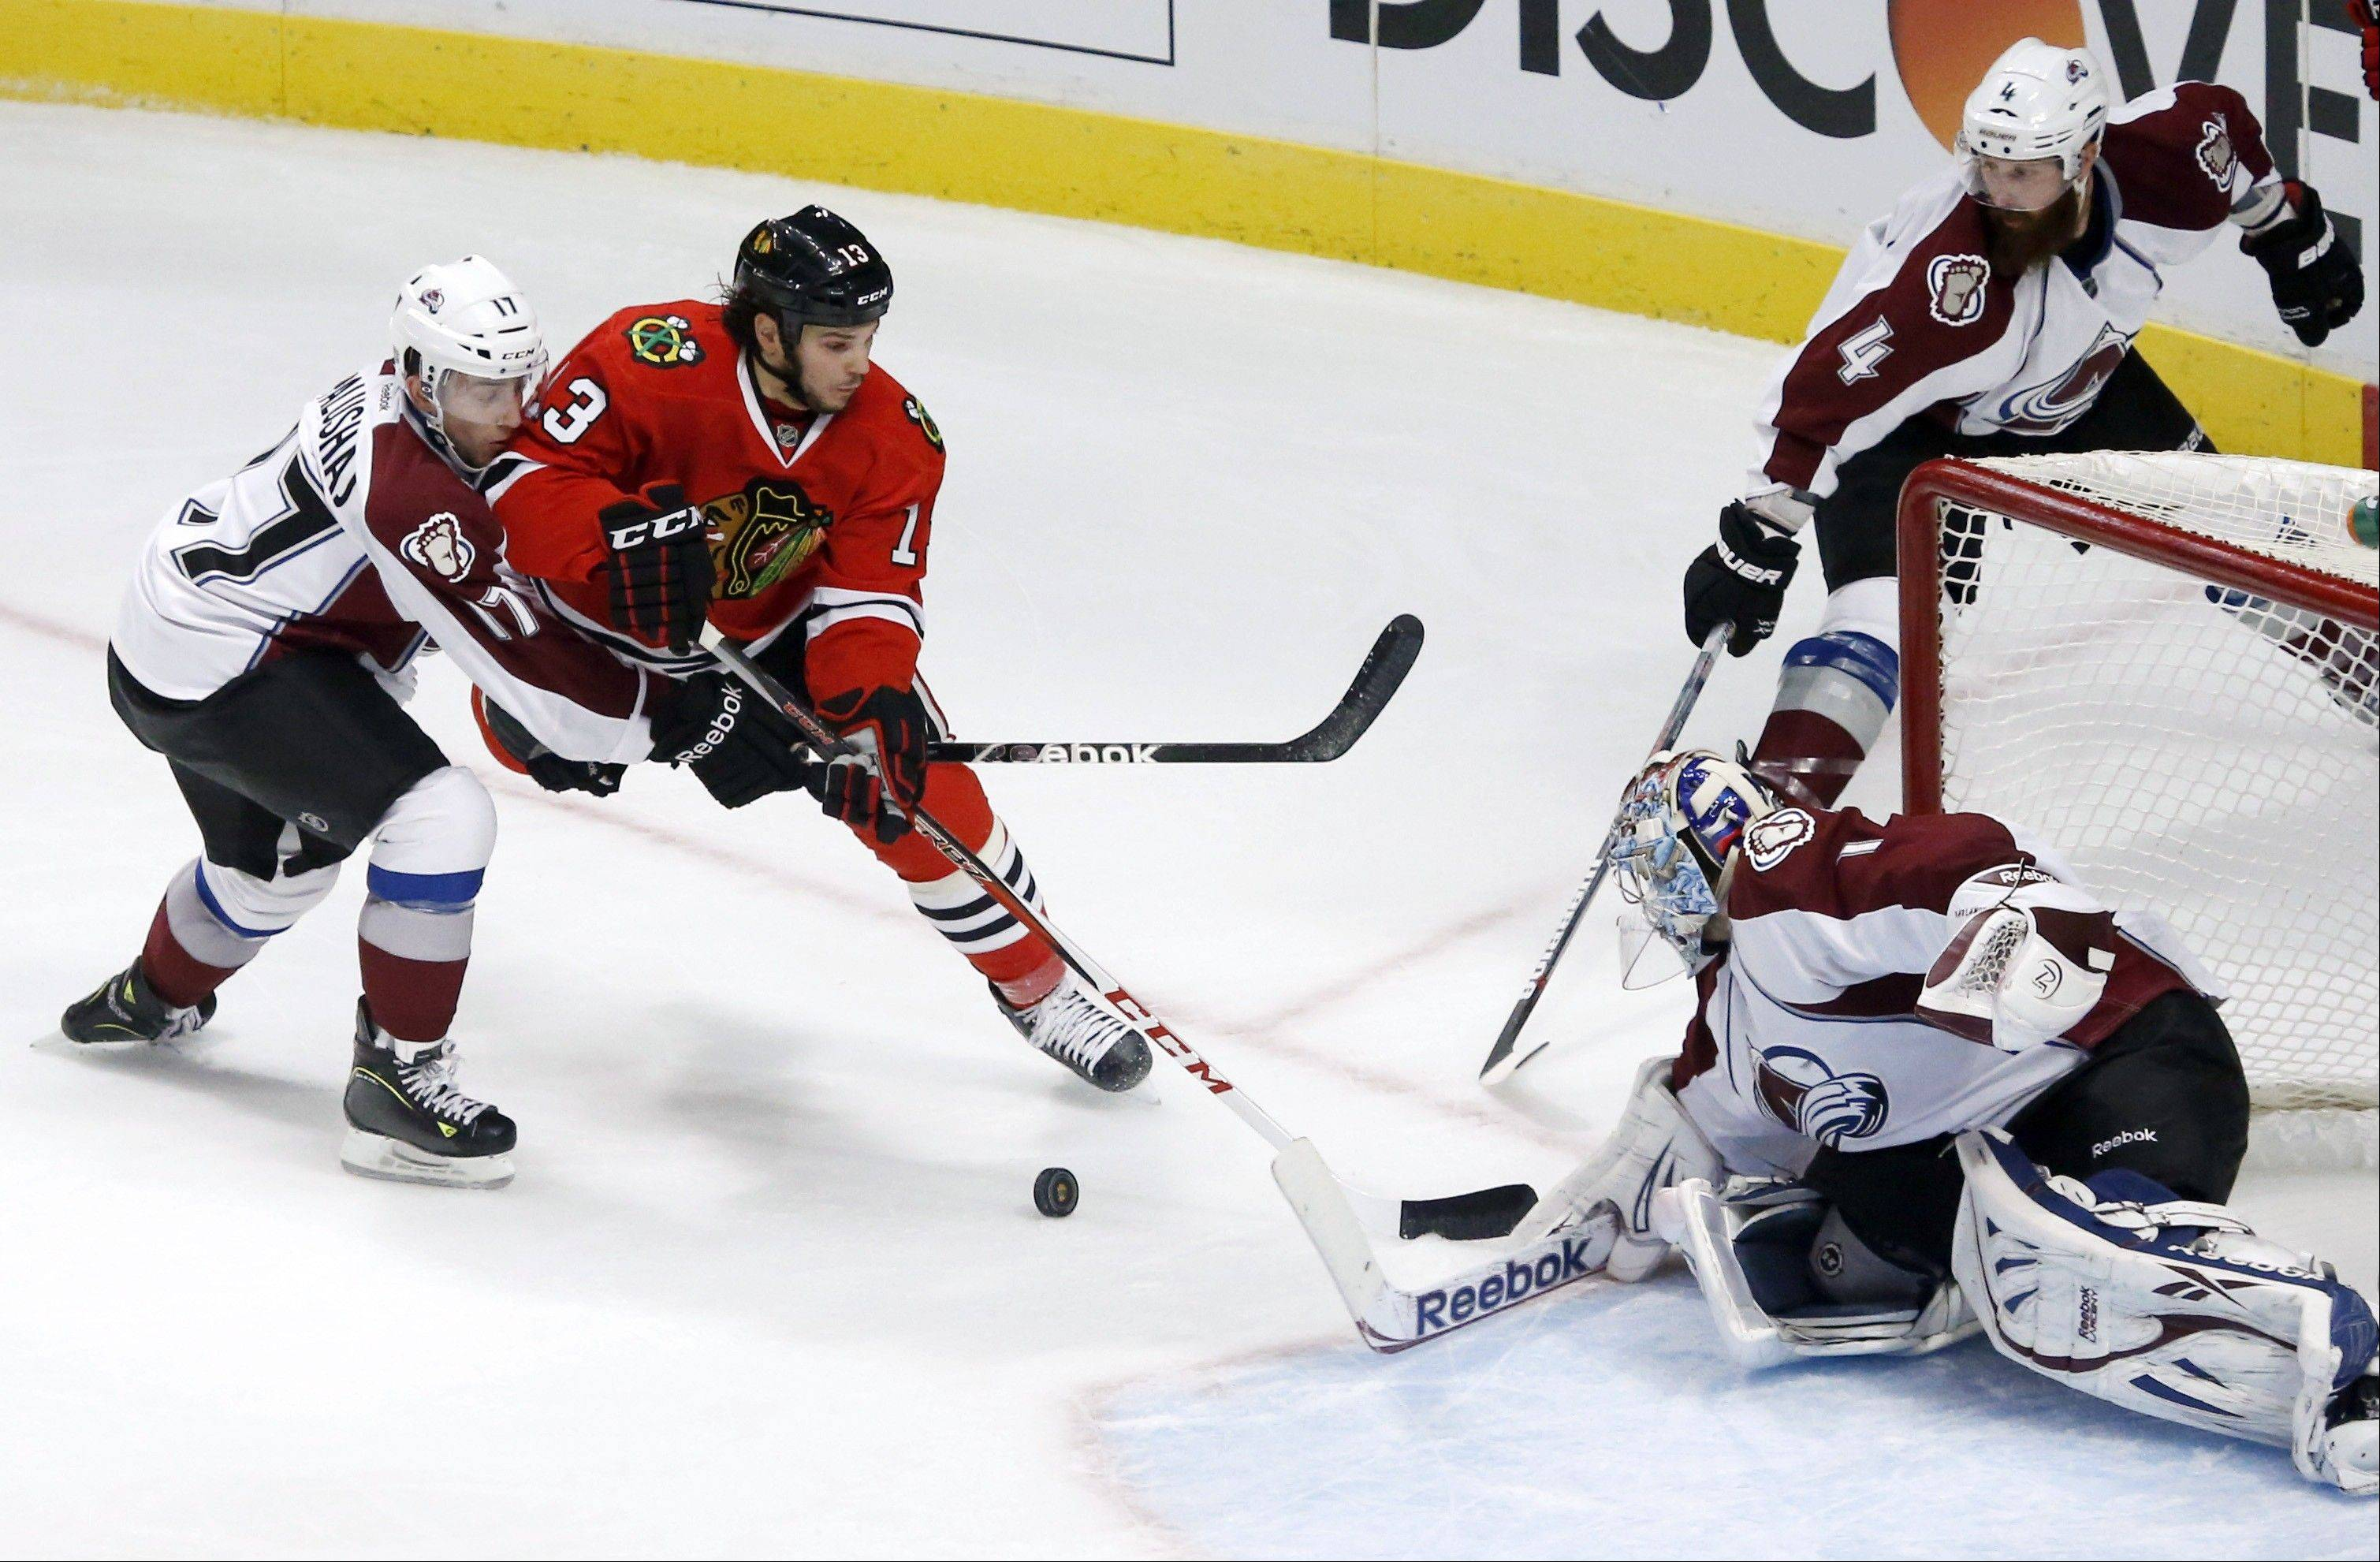 Chicago Blackhawks left wing Daniel Carcillo is unable to get a rebound off his shot on Colorado Avalanche goalie Semyon Varlamov as Aaron Palushaj and Greg Zanon defend during the second period .